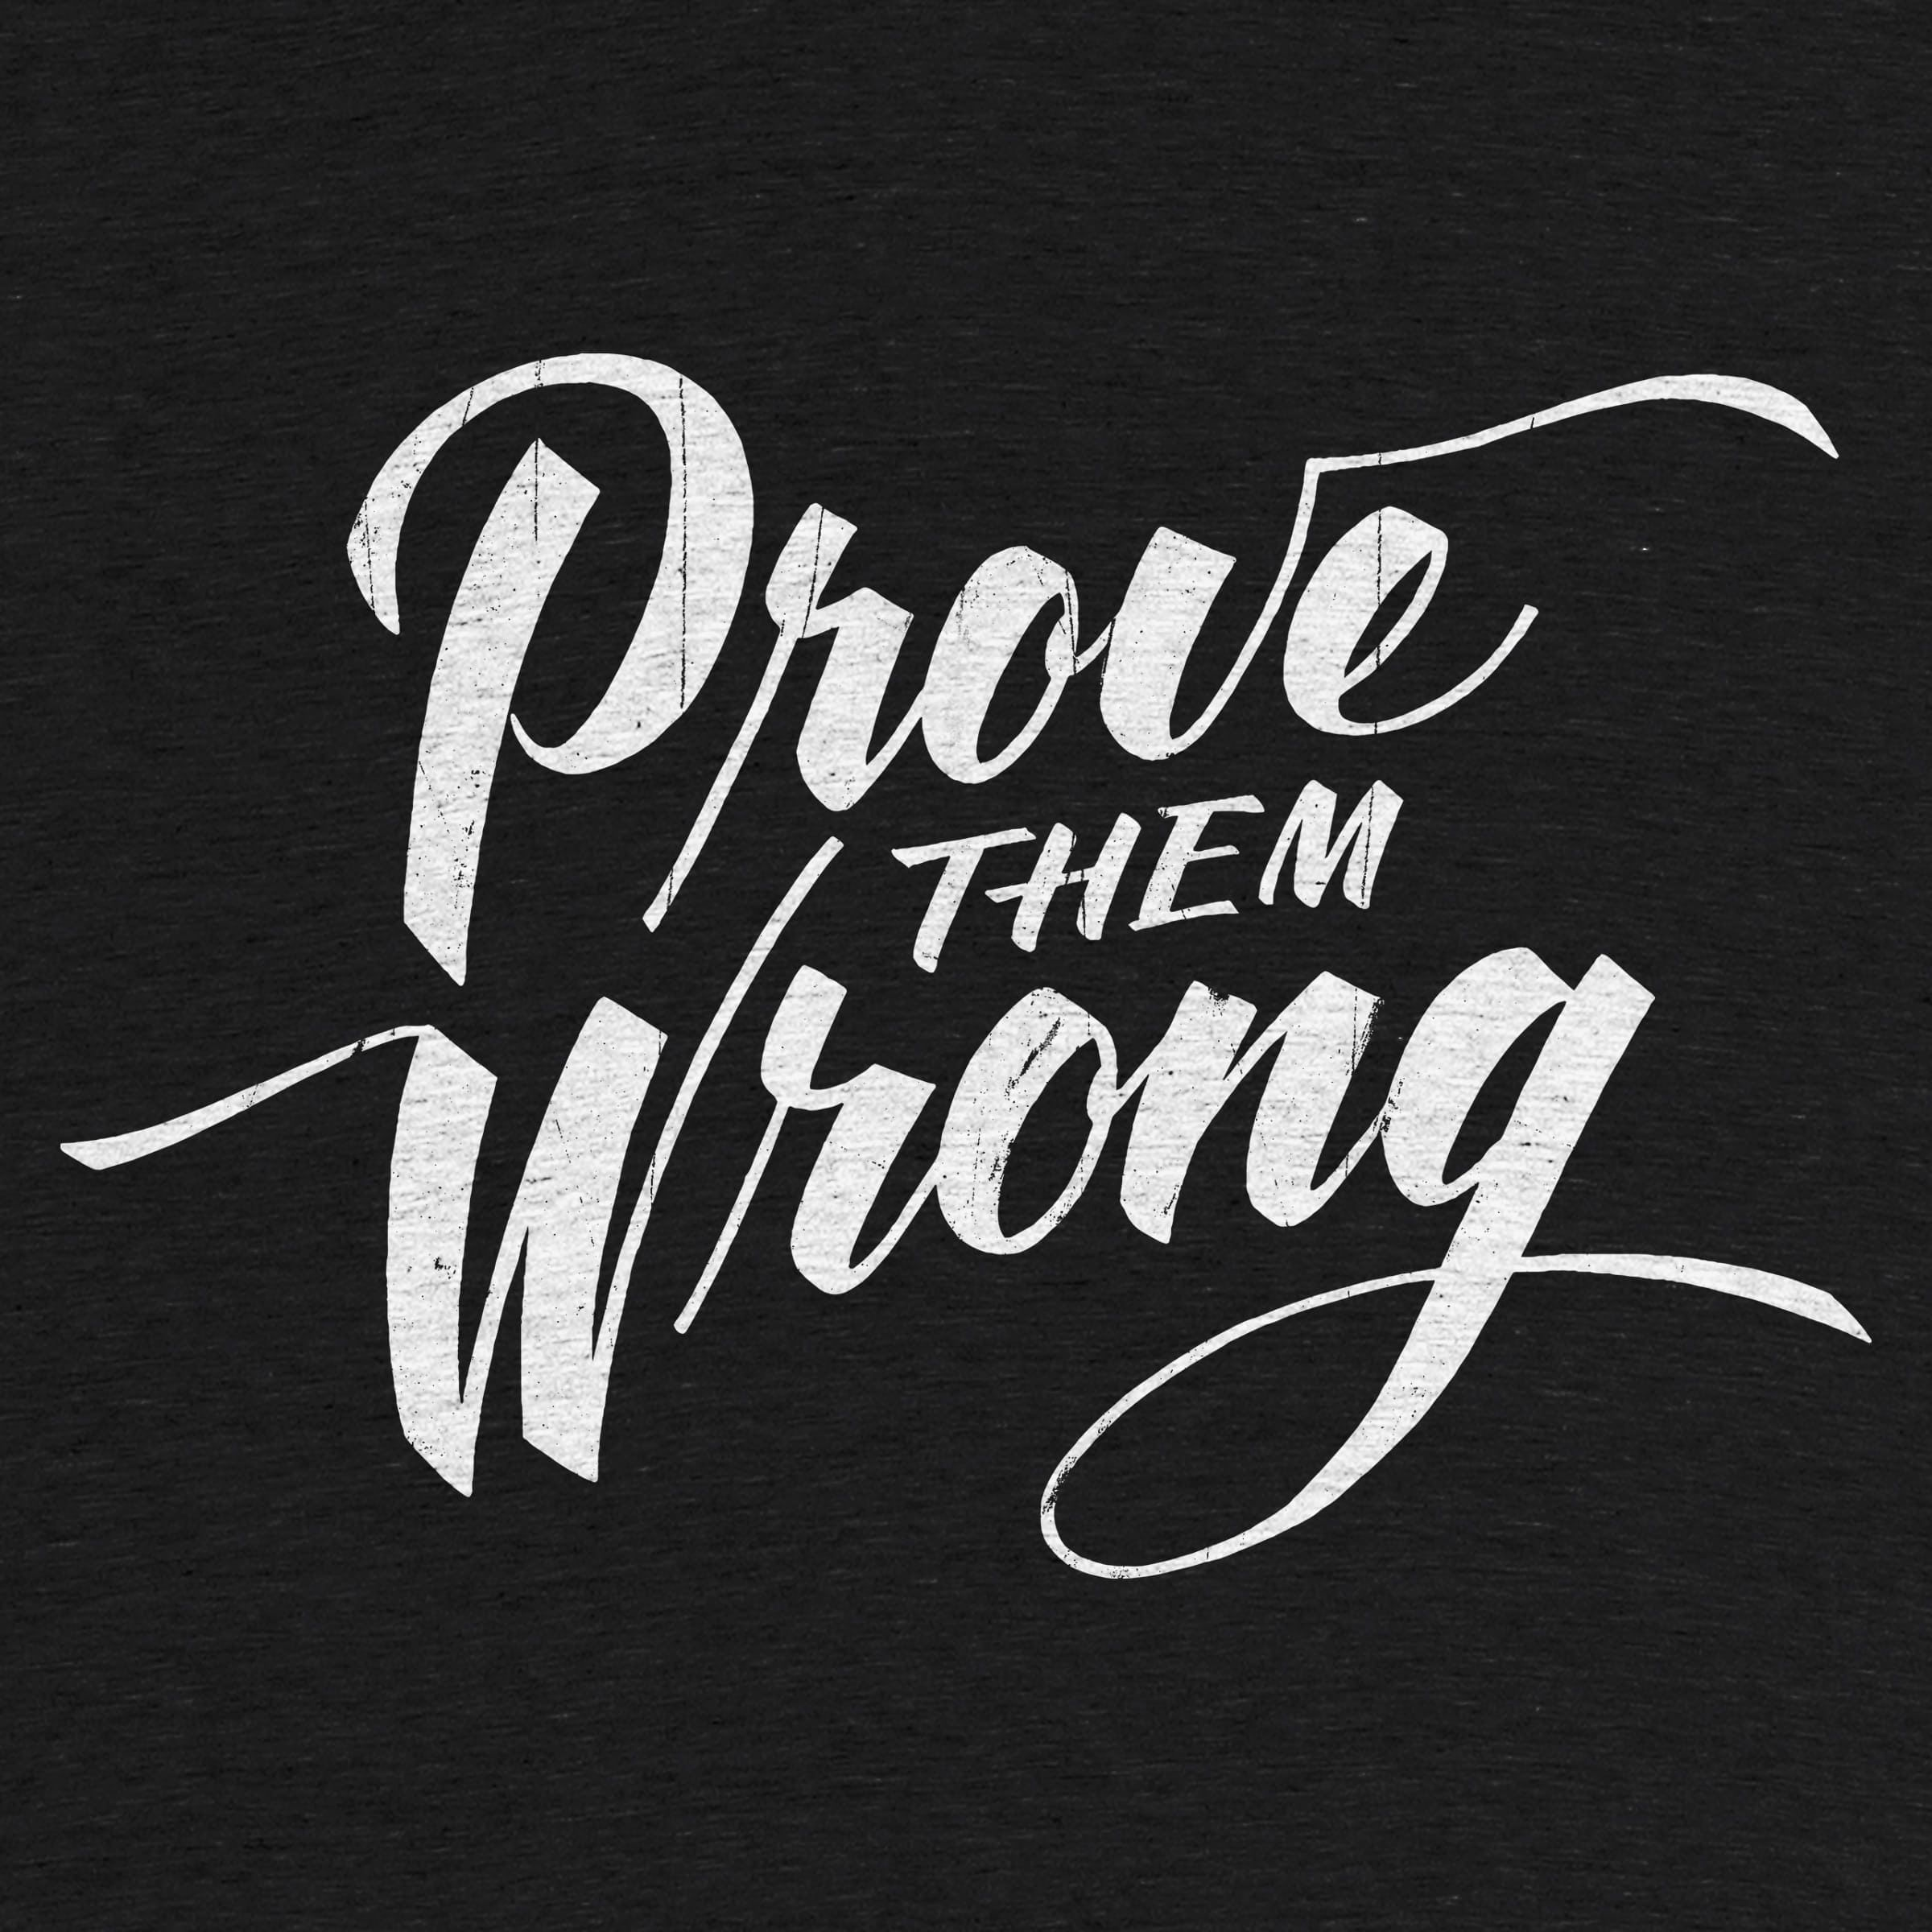 Prove Them Wrong Quotes Prove Them Wrong  Quotes Reality Check  Pinterest  Reality